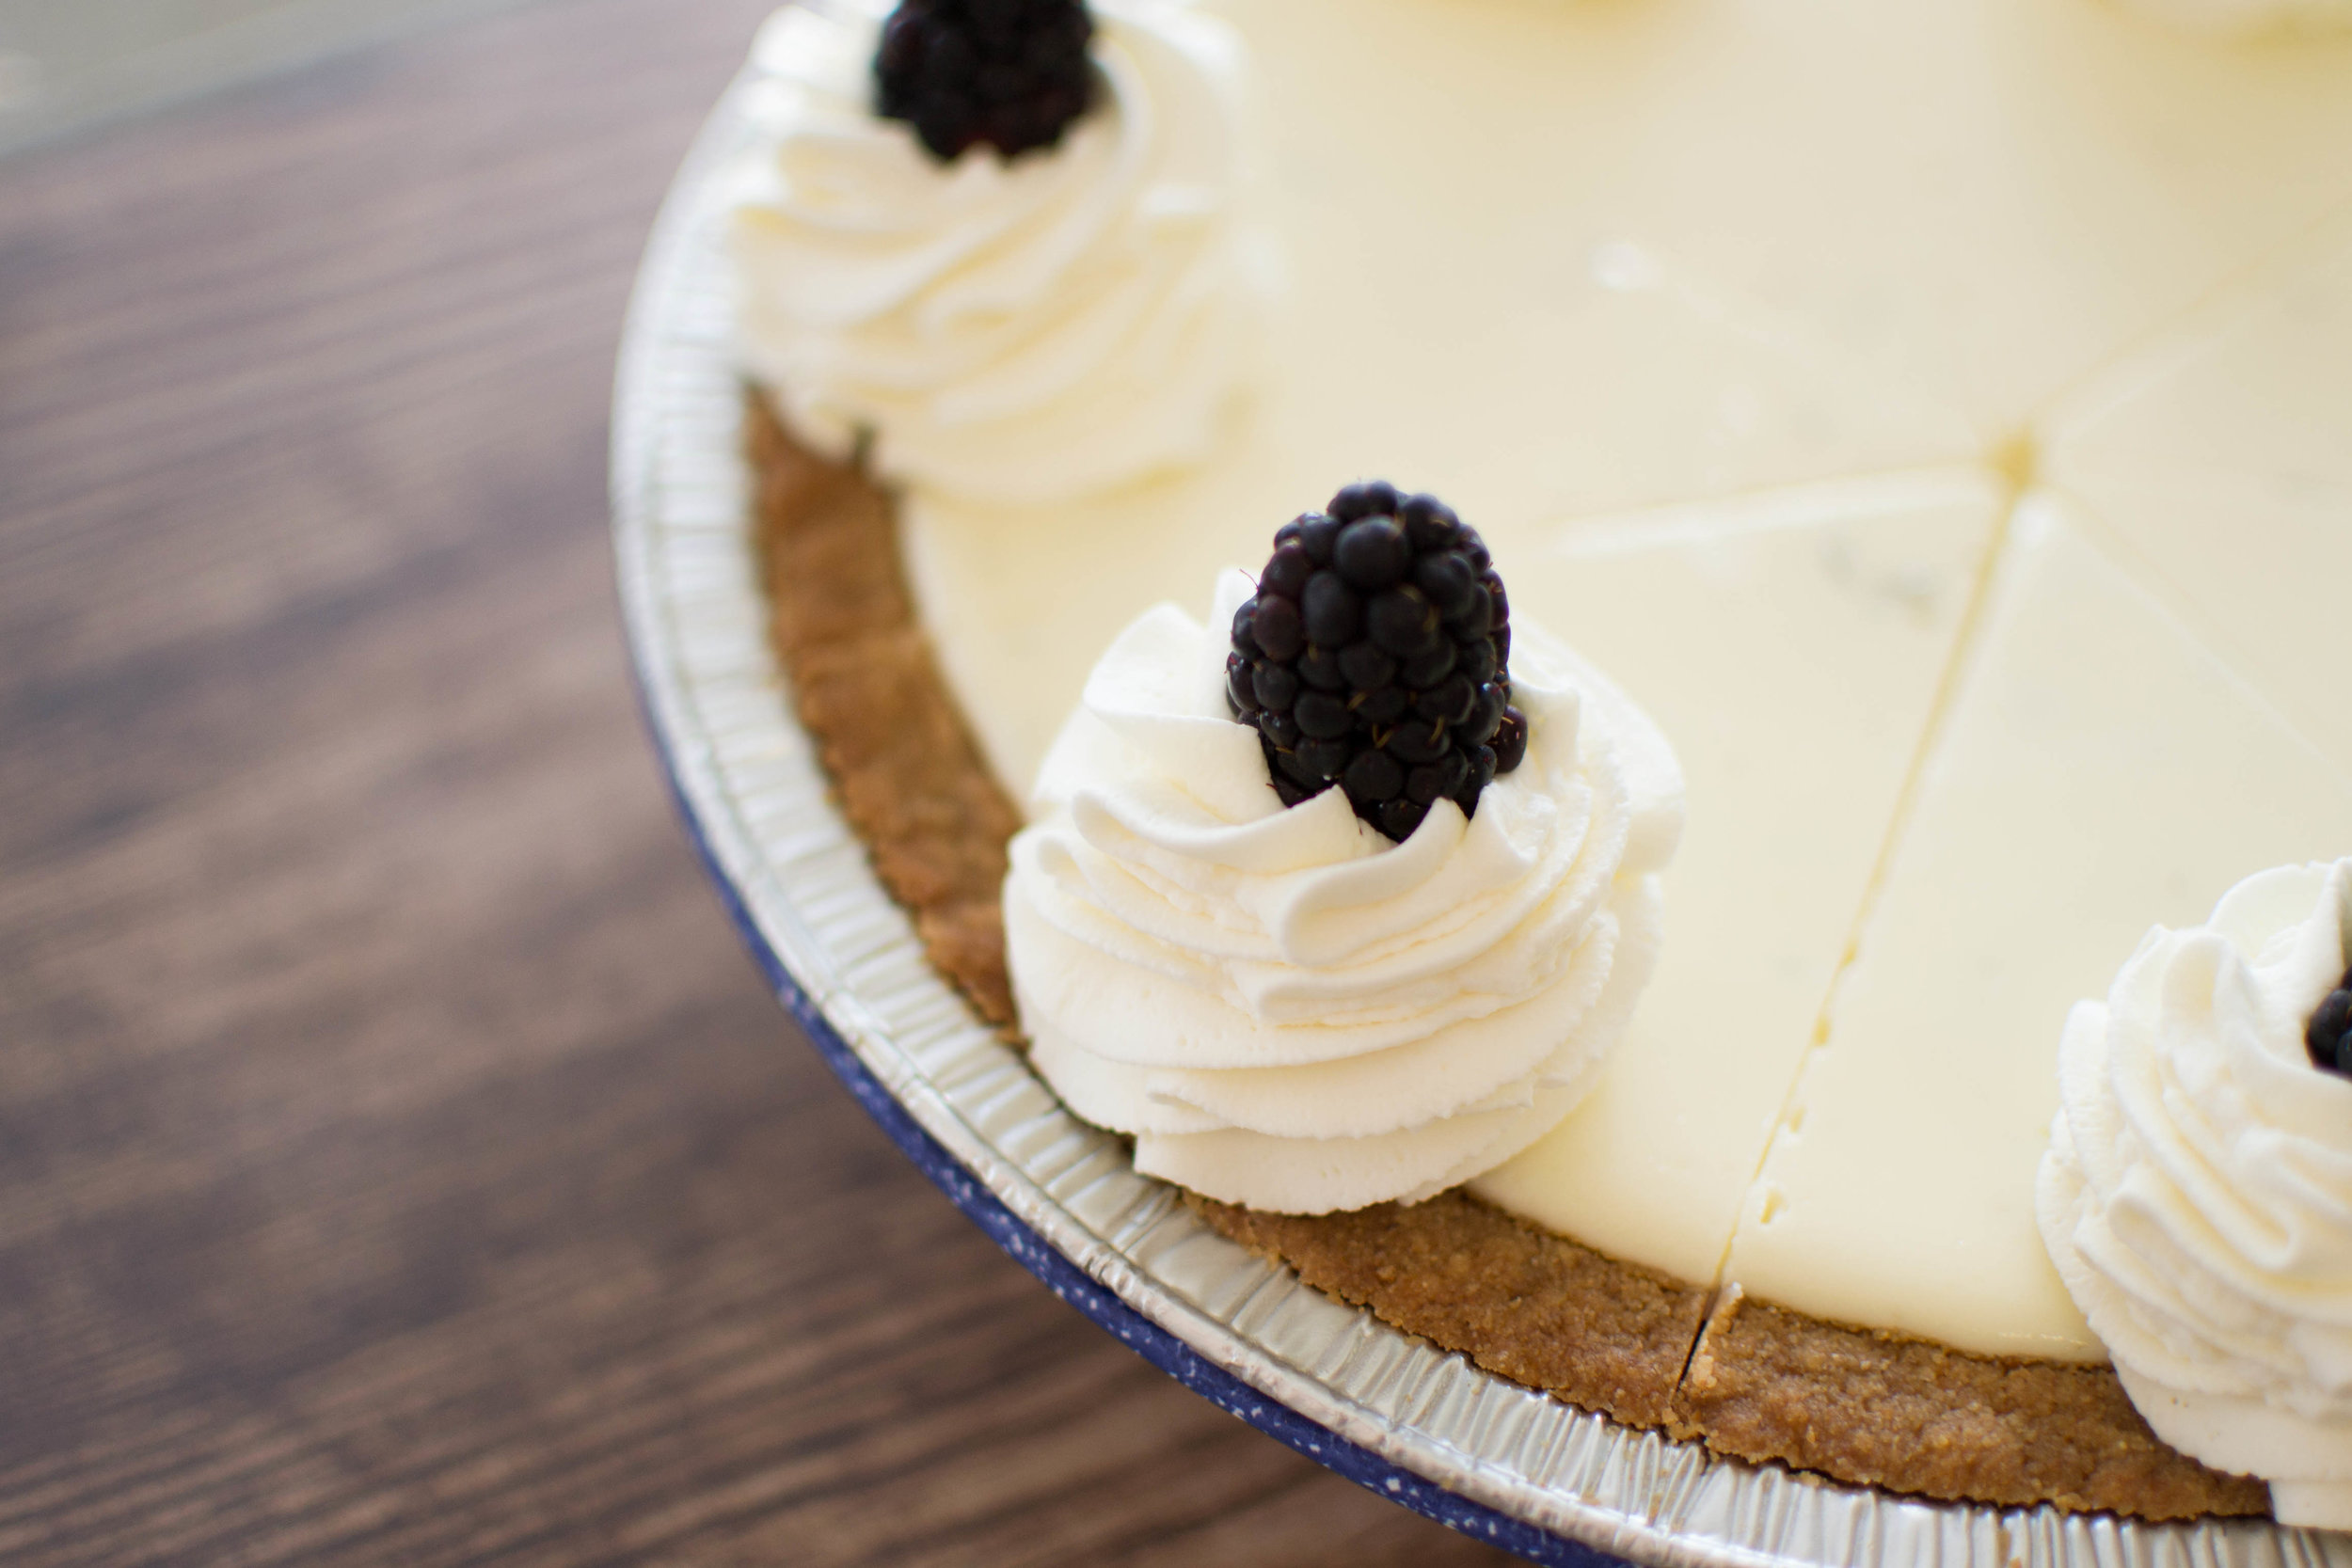 Food Photography Orlando Key Lime Pie.jpg